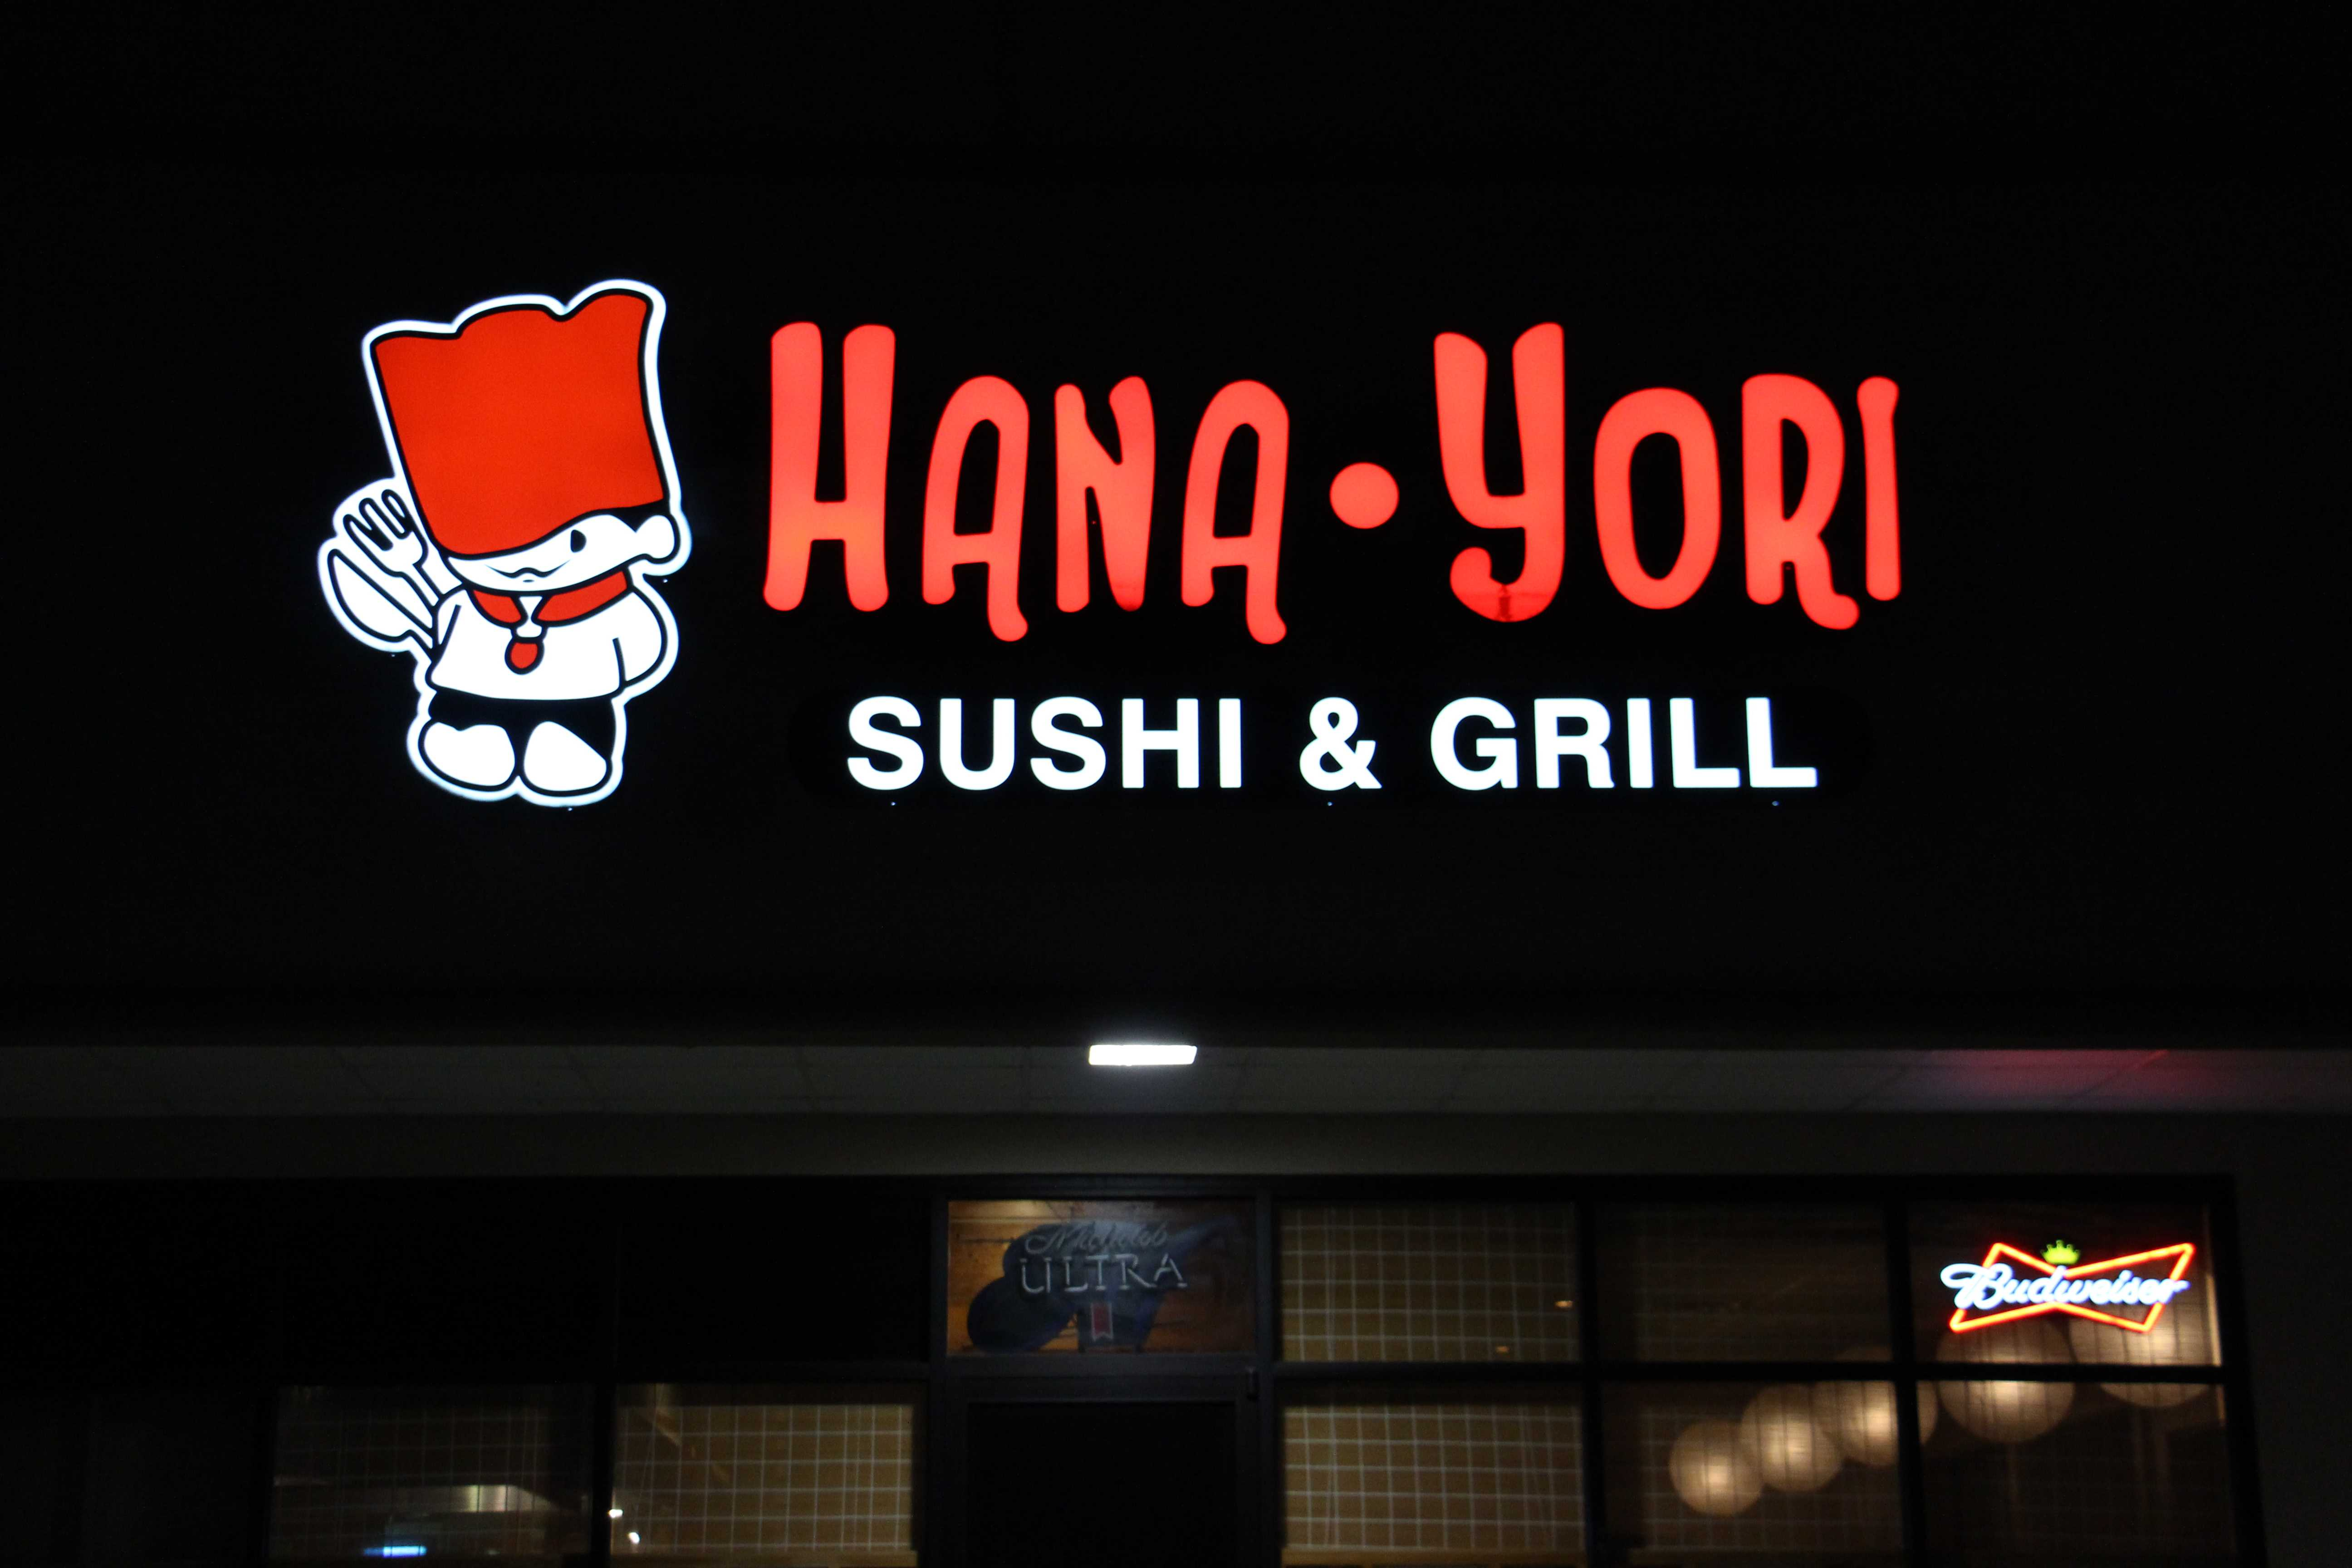 Local Eatery of the Week: Hana Yori